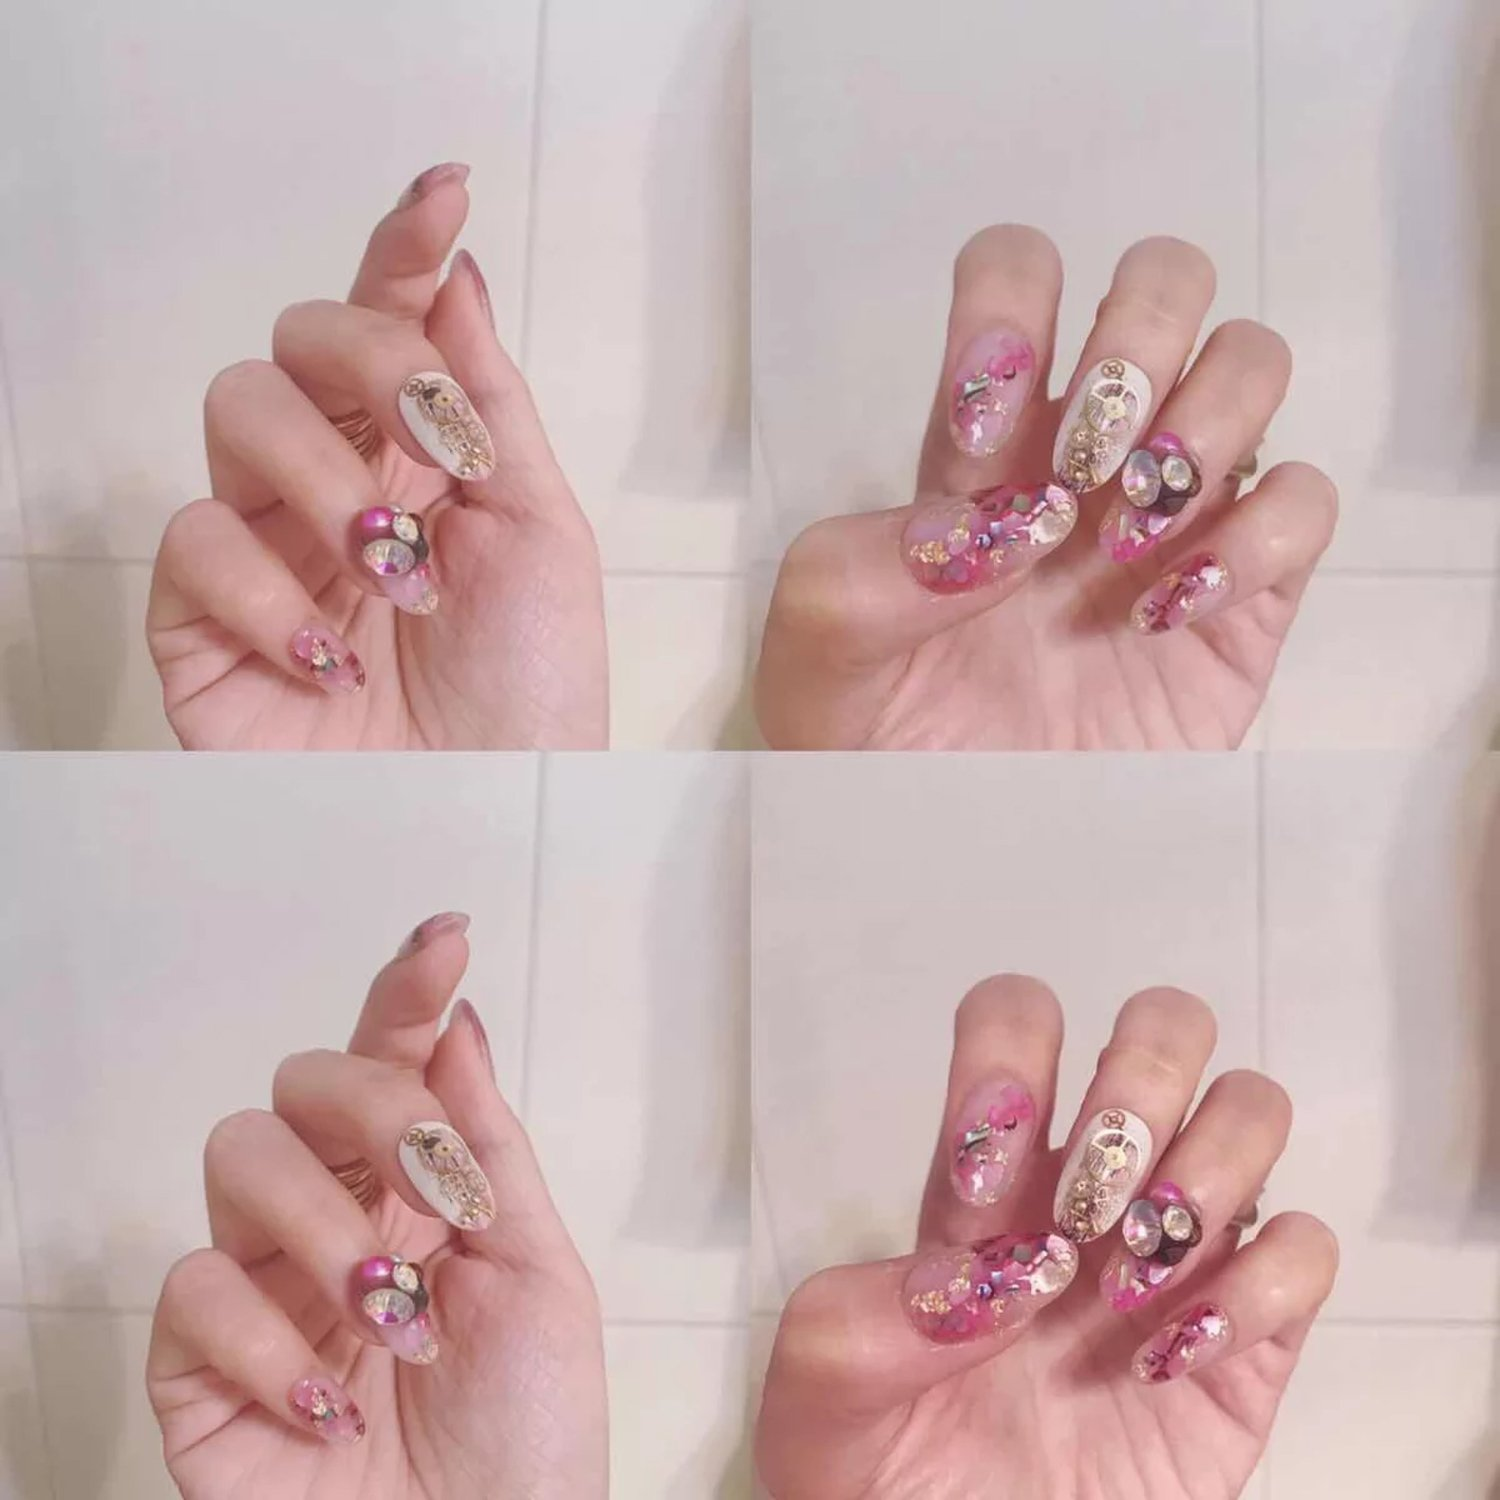 French Acrylic False Artificial Nails 500pcs 10 Sizes Clear For Nail